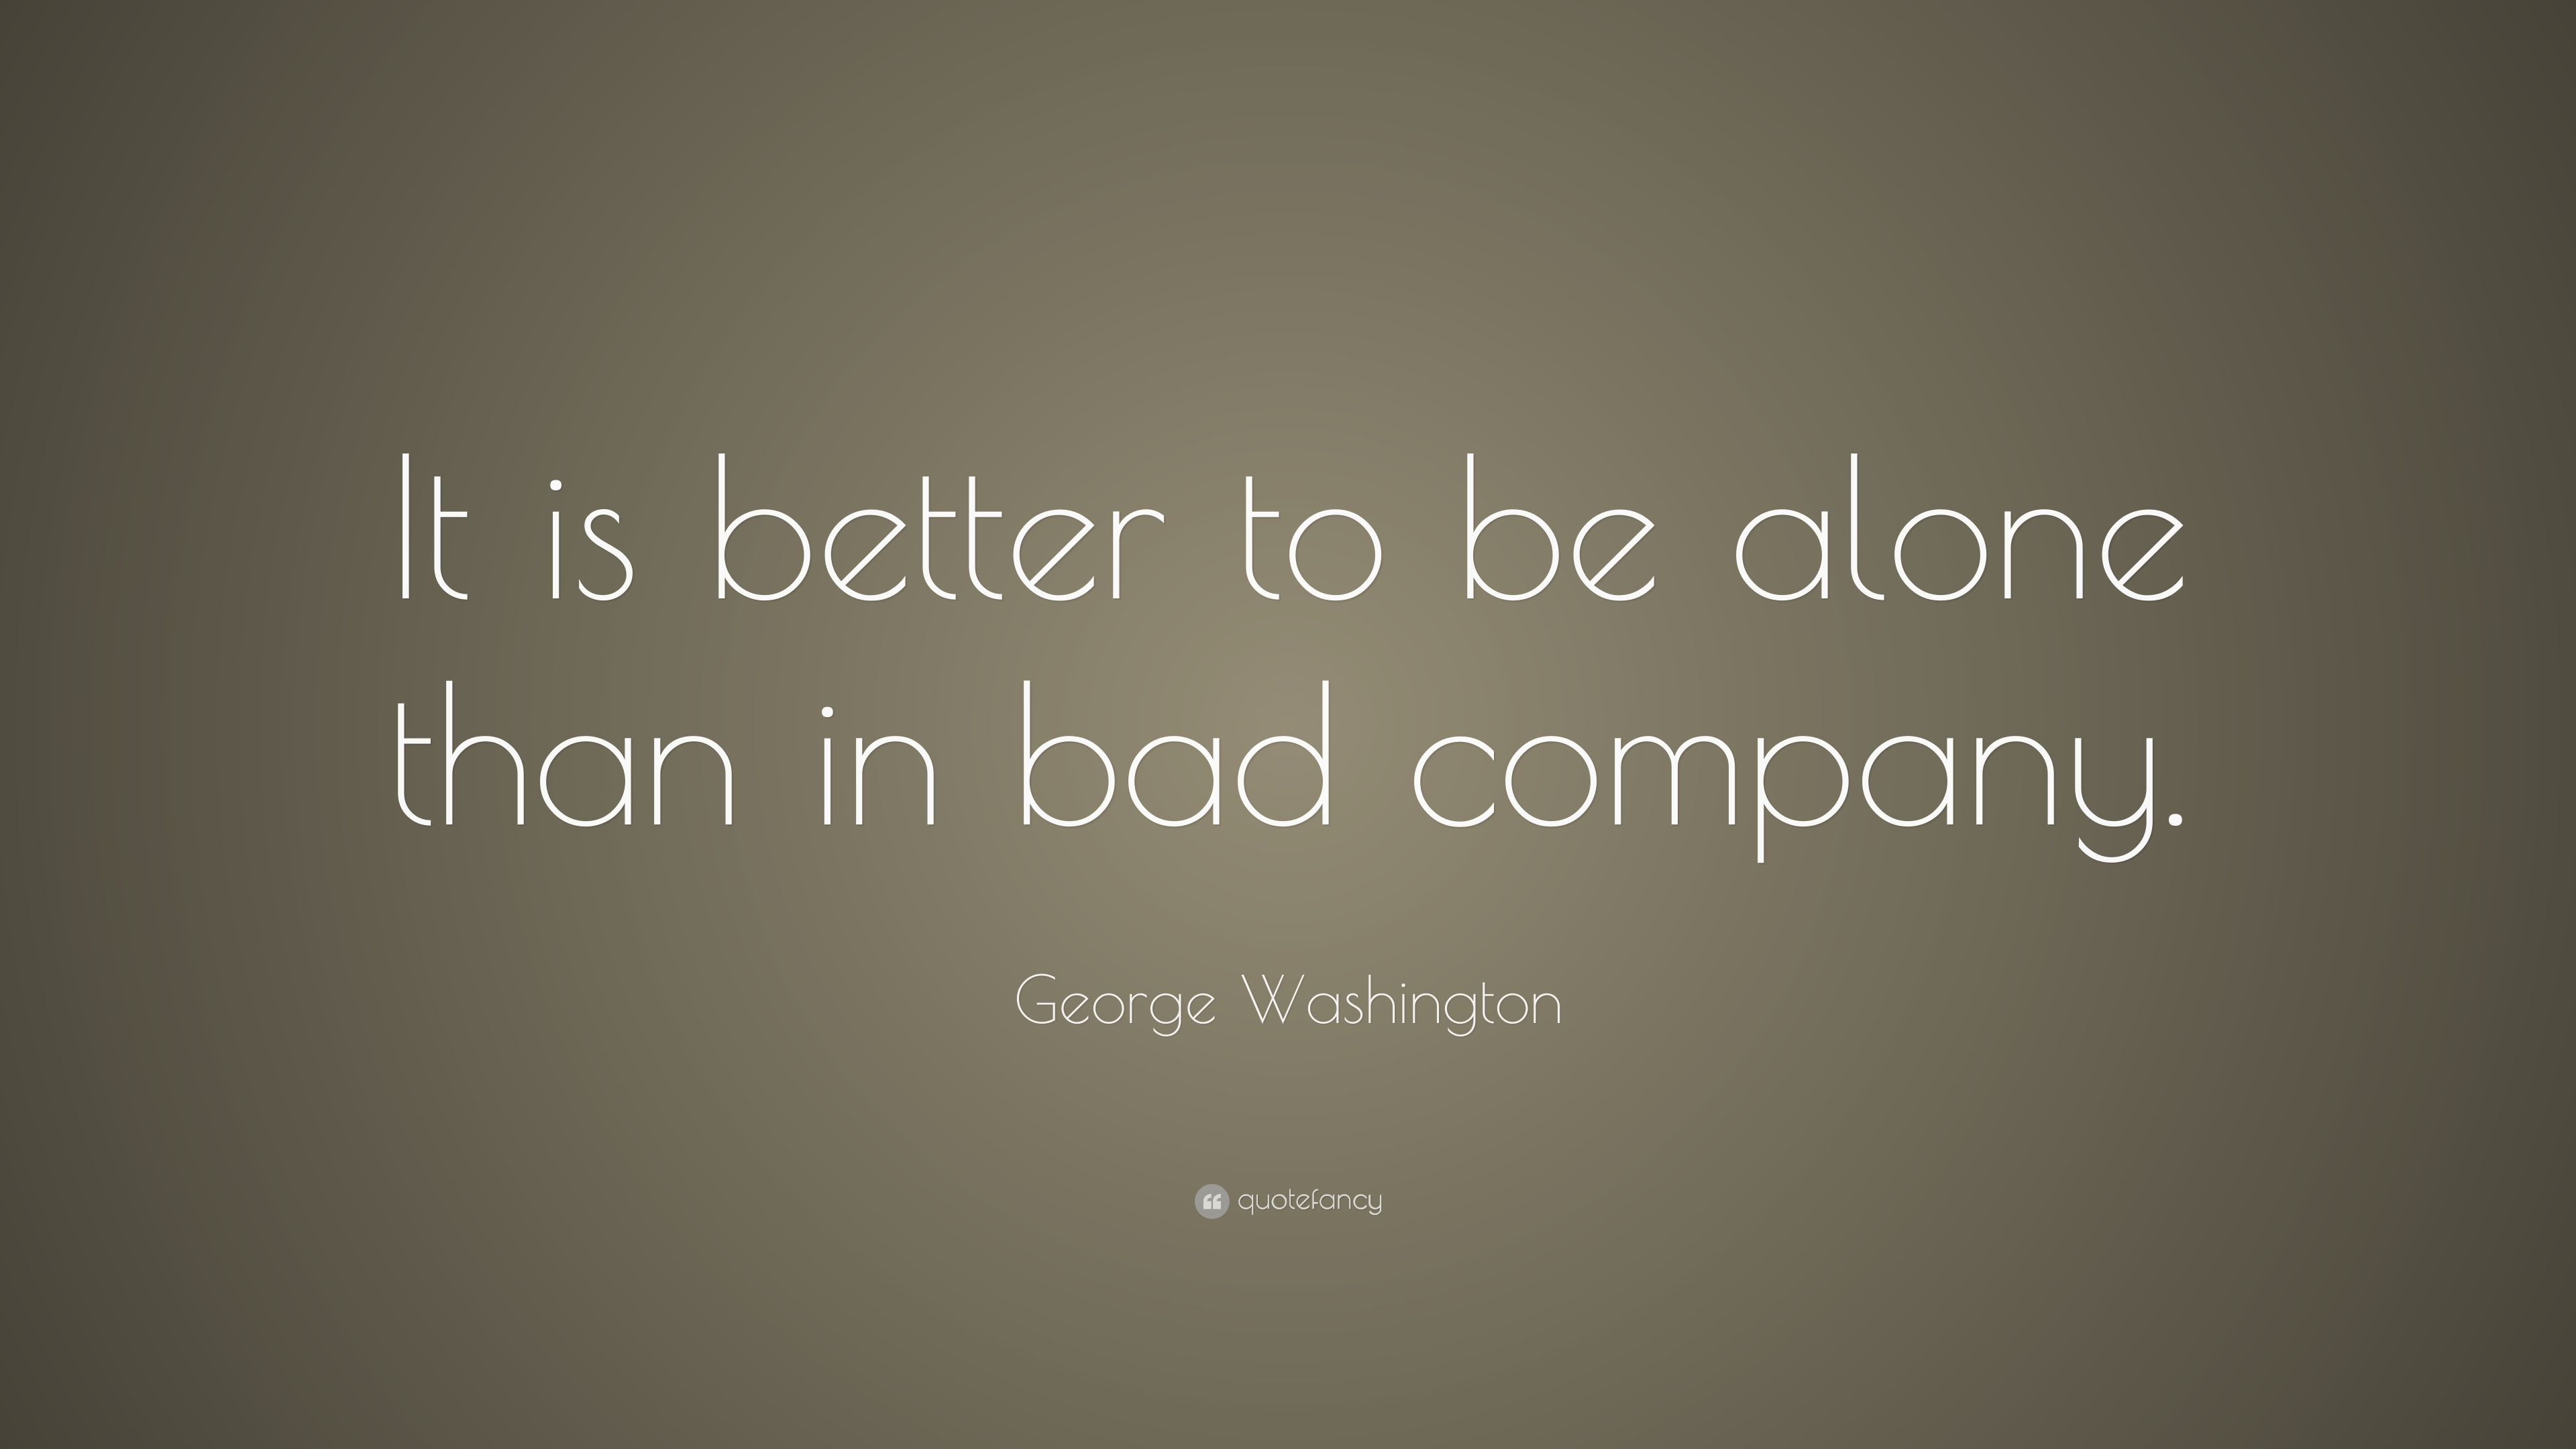 Obama Wallpaper Quote George Washington Quote It Is Better To Be Alone Than In